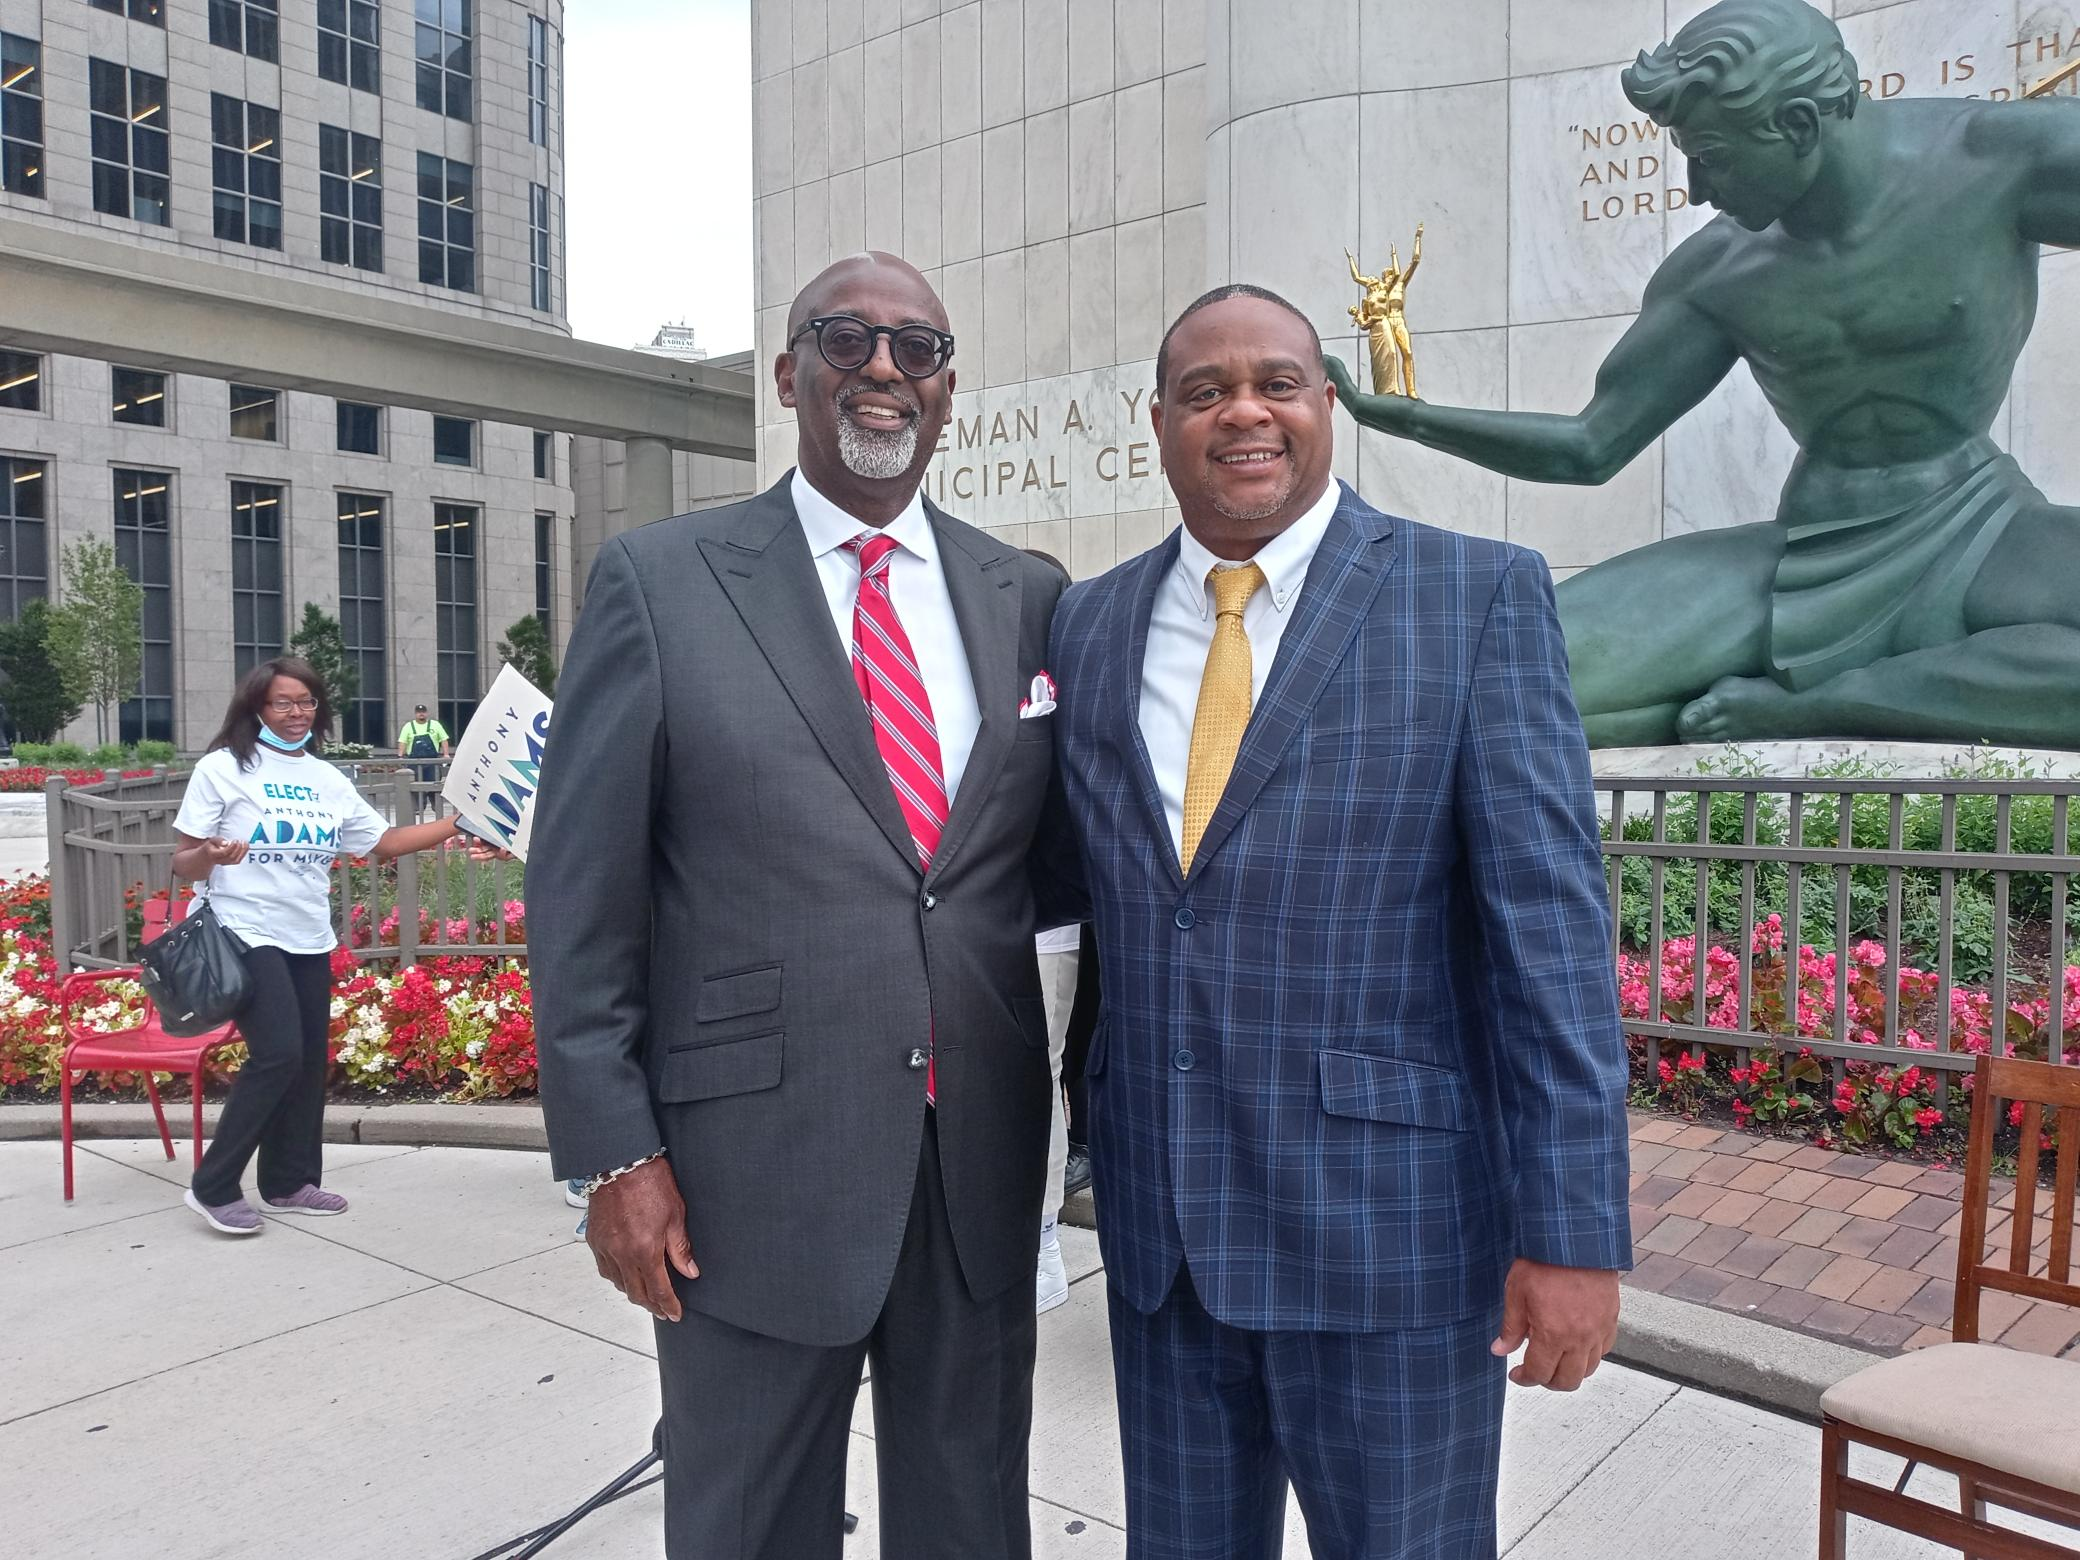 Pittsburgh Democratic Mayor Nominee Ed Gainey Joined Anthony Adams on Campaign Trail